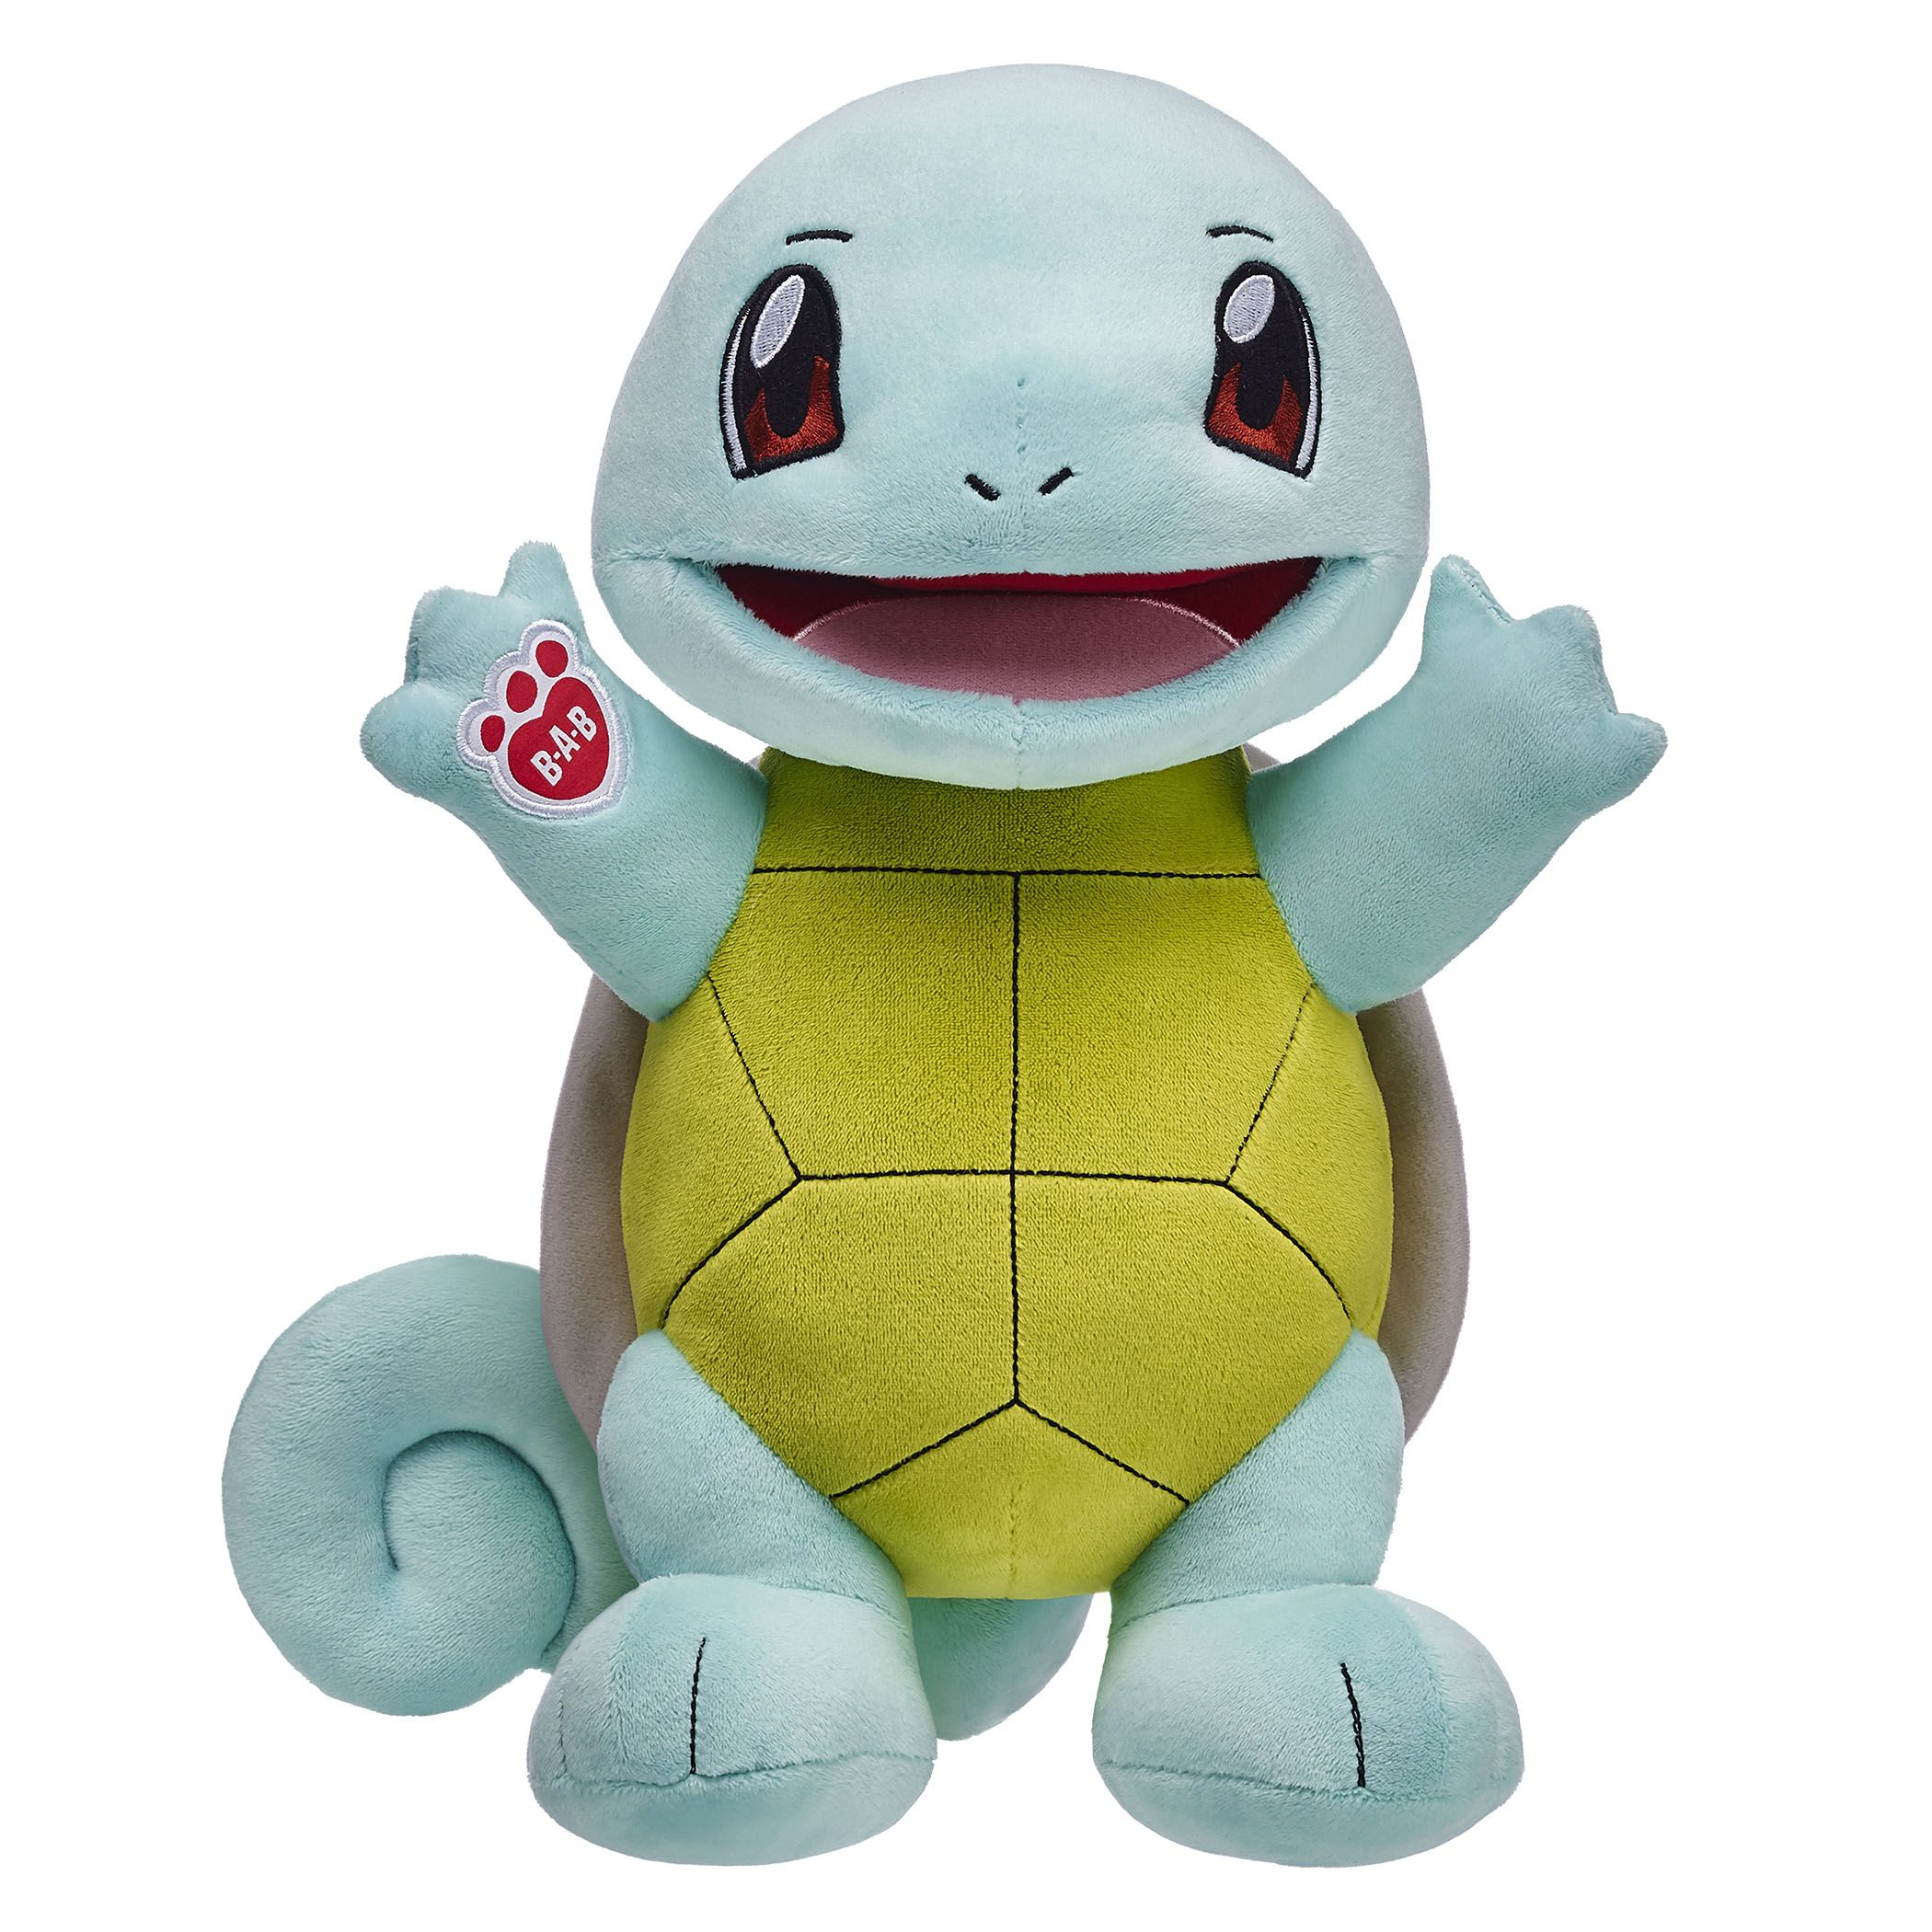 90466a7c Exclusive: Build-A-Bear Chooses Squirtle as Next Pokemon Plush ...